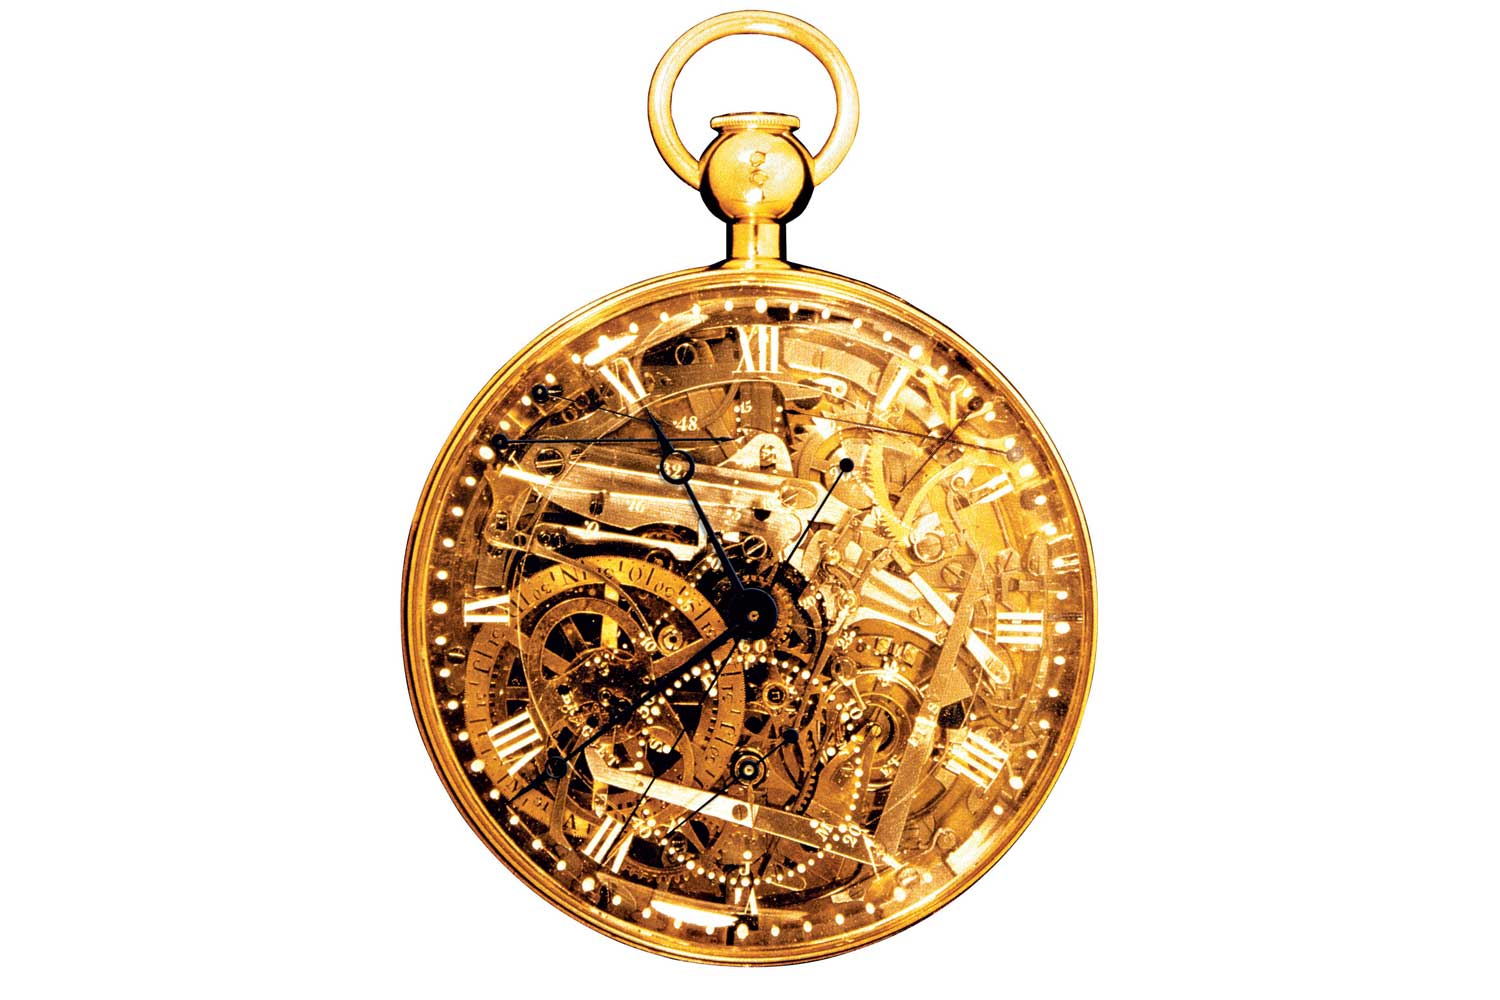 The original pocket watch 160 made for Marie Antoinette